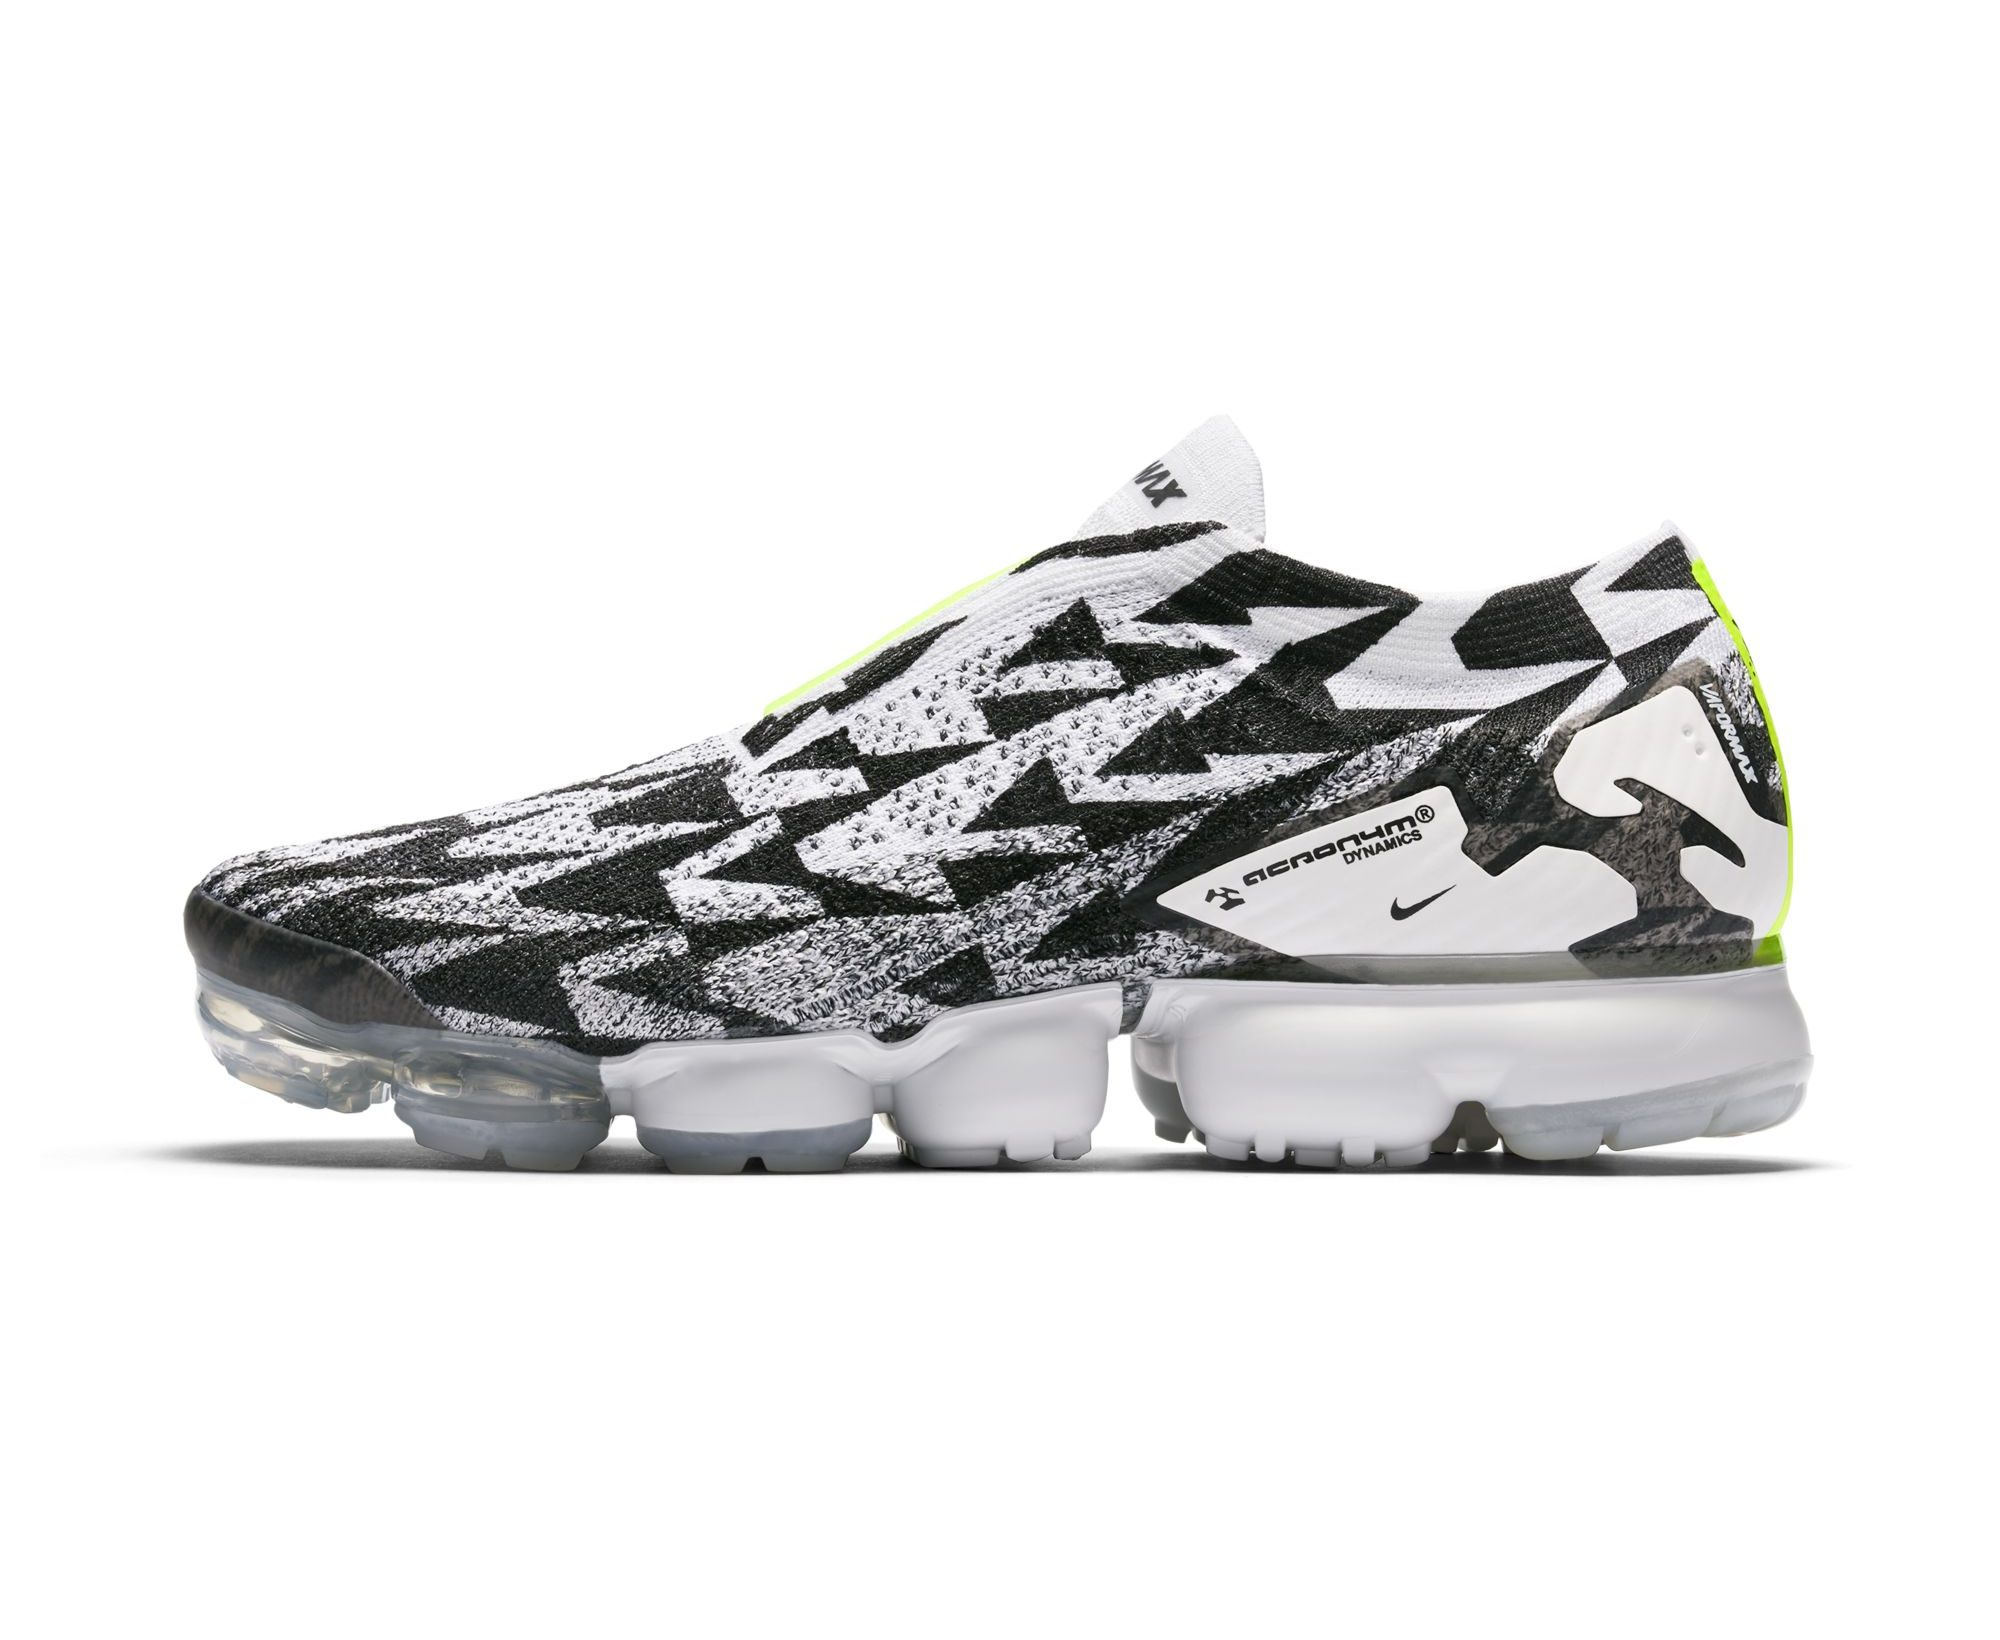 Official Images of the ACRONYM x Nike Air VaporMax Flyknit